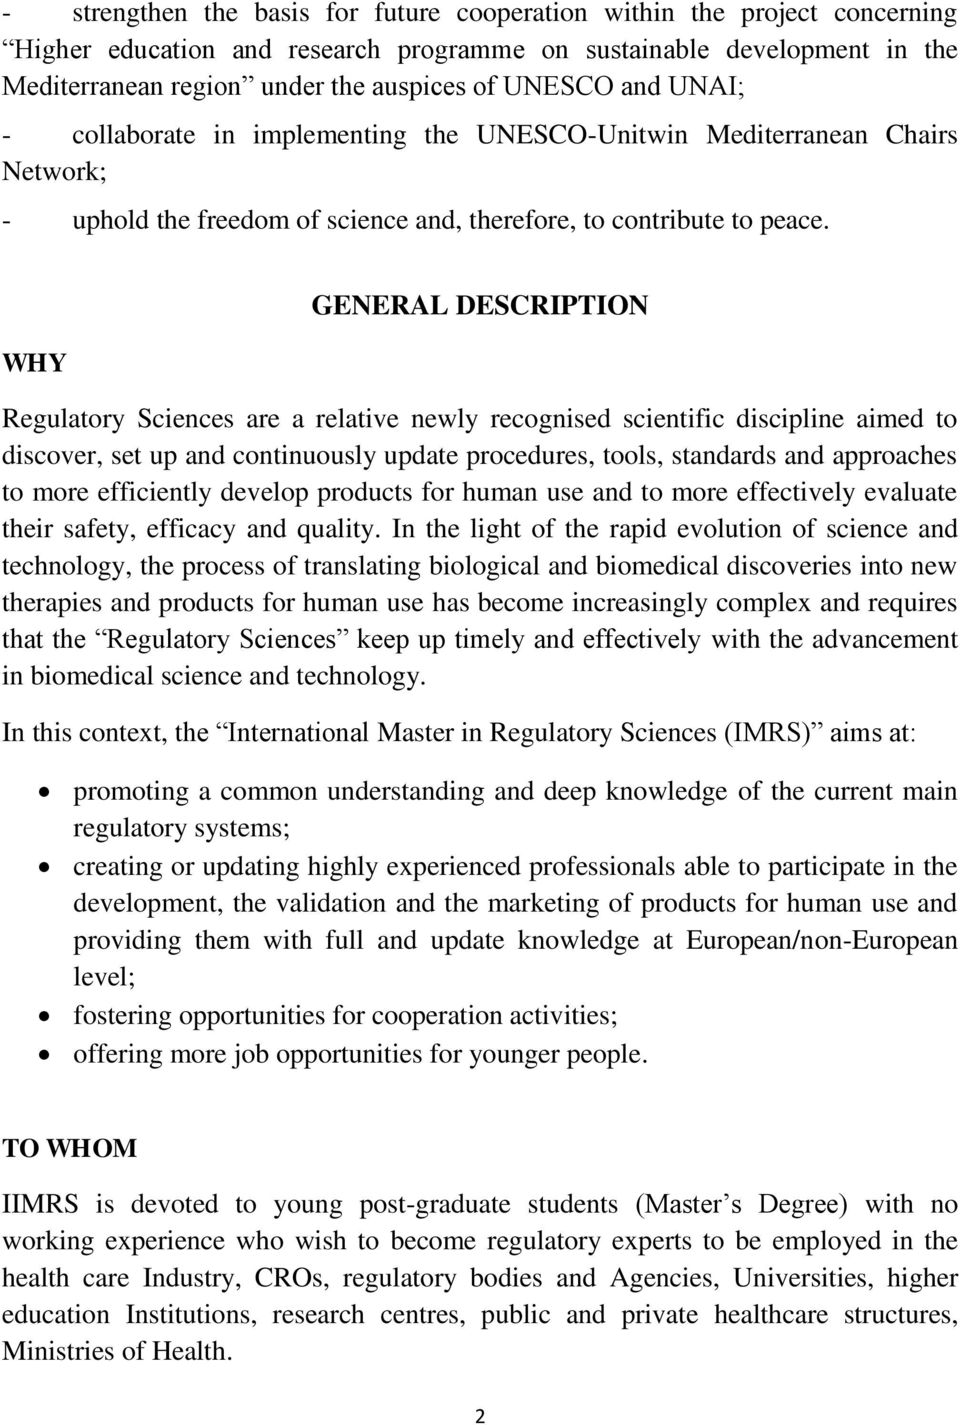 WHY GENERAL DESCRIPTION Regulatory Sciences are a relative newly recognised scientific discipline aimed to discover, set up and continuously update procedures, tools, standards and approaches to more